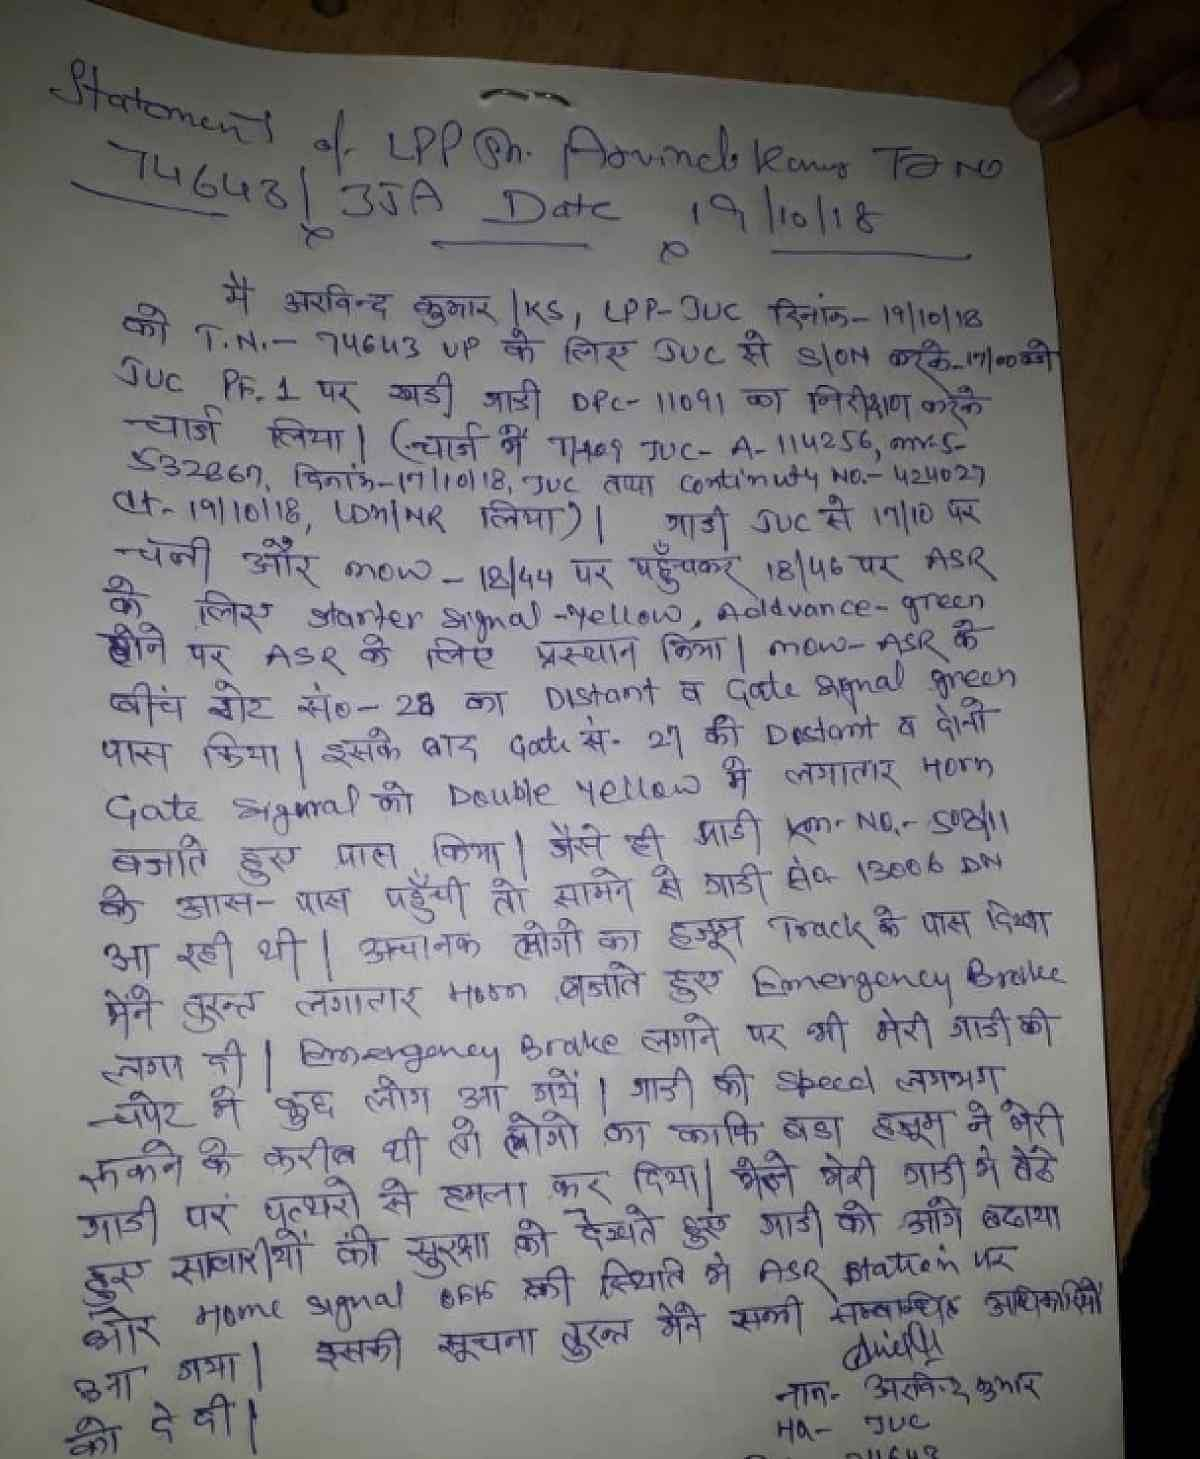 Screengrab of the statement submitted by the train driver to the Railway authorities.